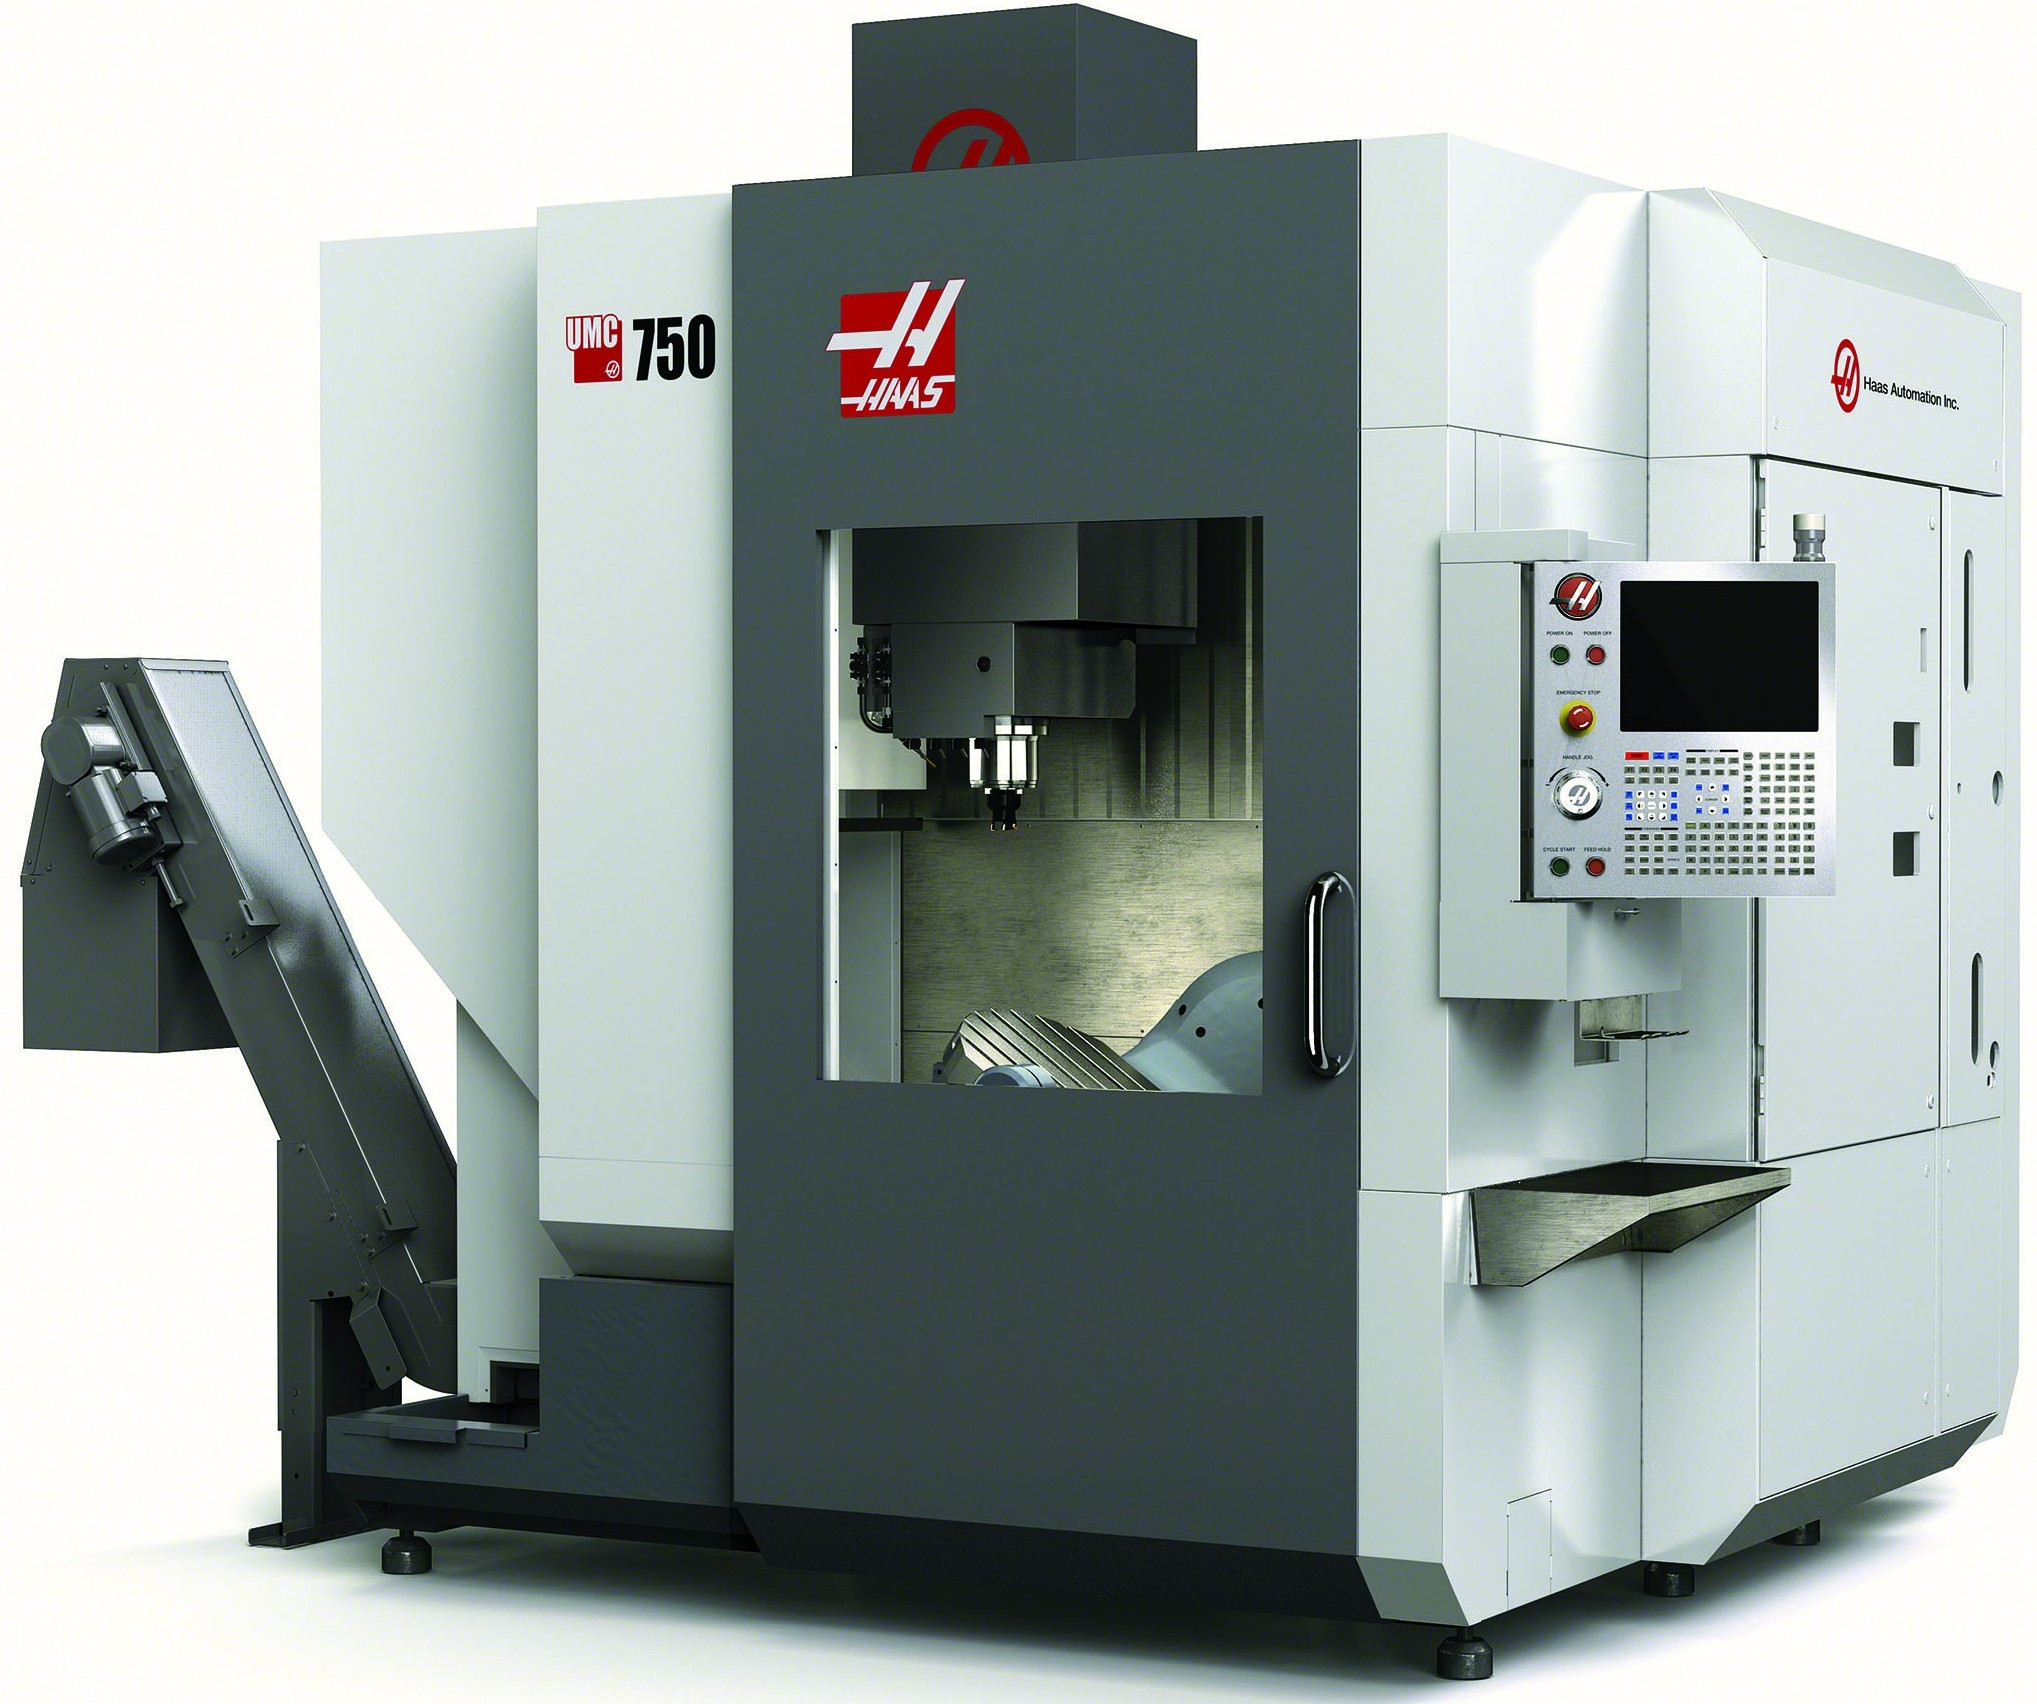 The UMC-750 is a versatile 5-axis 40-taper vertical machining center with 30 in x 20 in x 20 in travels and an integrated dual-axis trunnion table. The base machine is equipped with an 8,100 rpm inline direct-drive spindle (12,000 rpm optional), and comes standard with a 40+1 tool side-mount tool changer.(Click on photo to enlarge it)